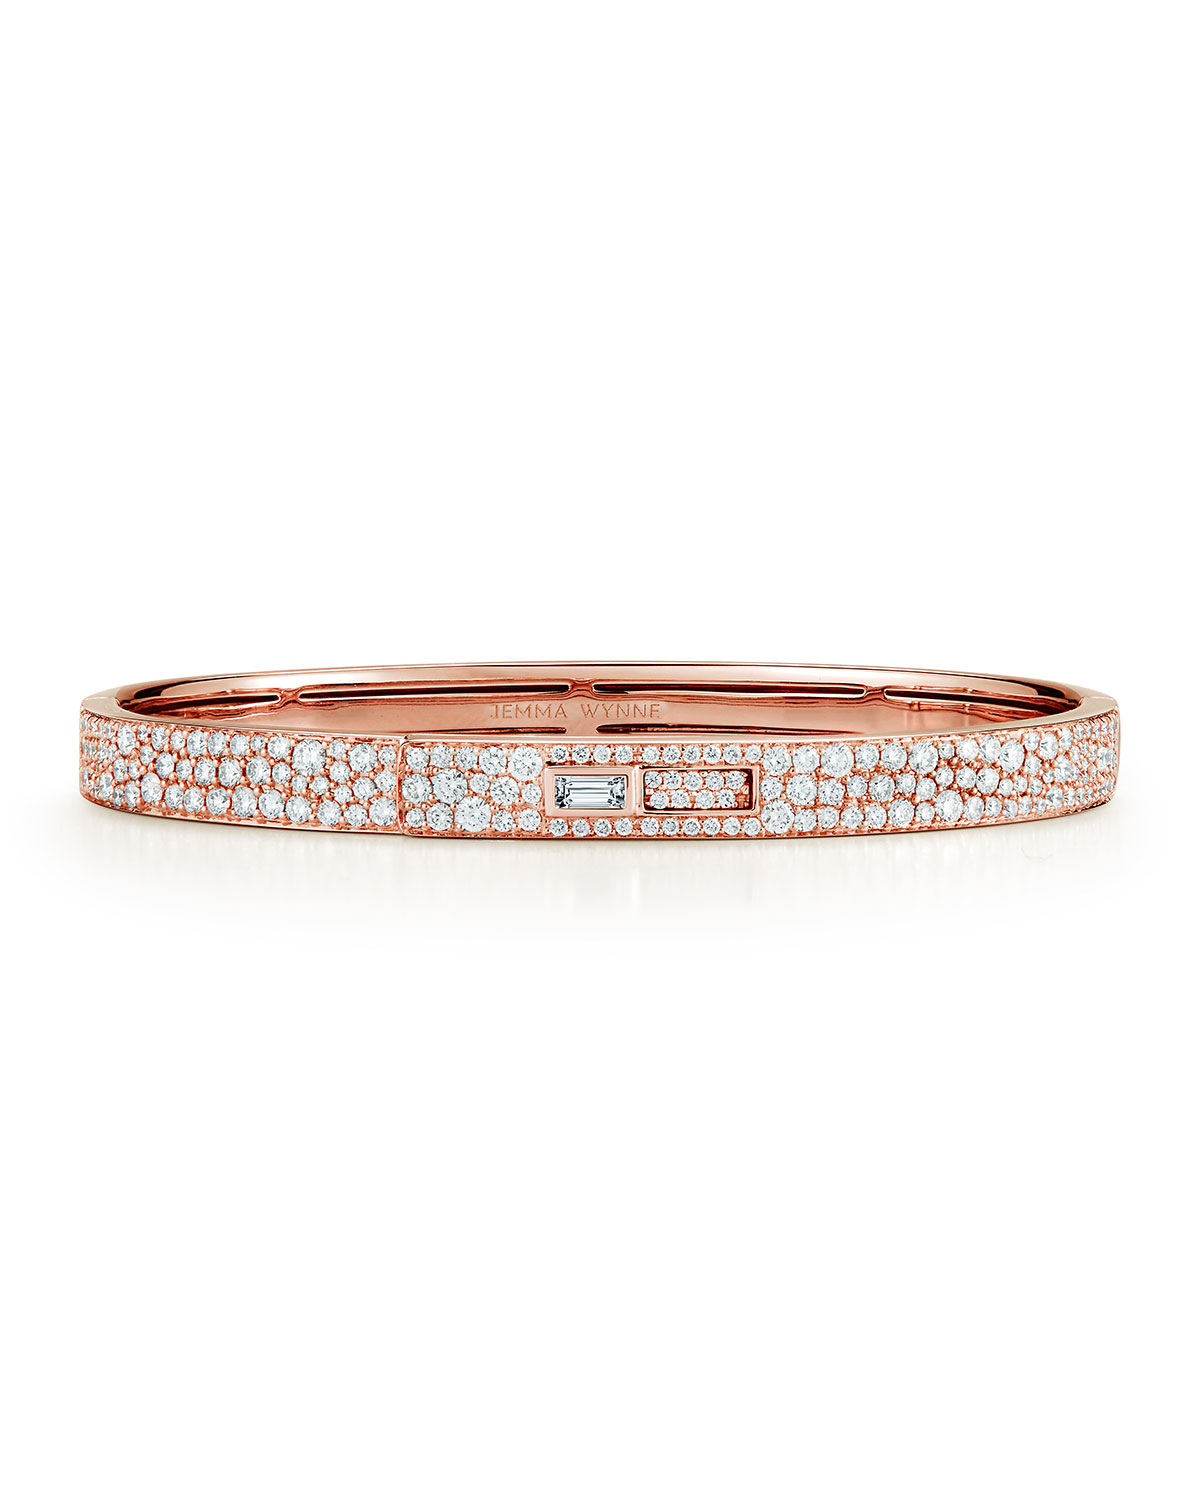 Prive Luxe 18k Rose Gold Pave Diamond Keyhole Cuff